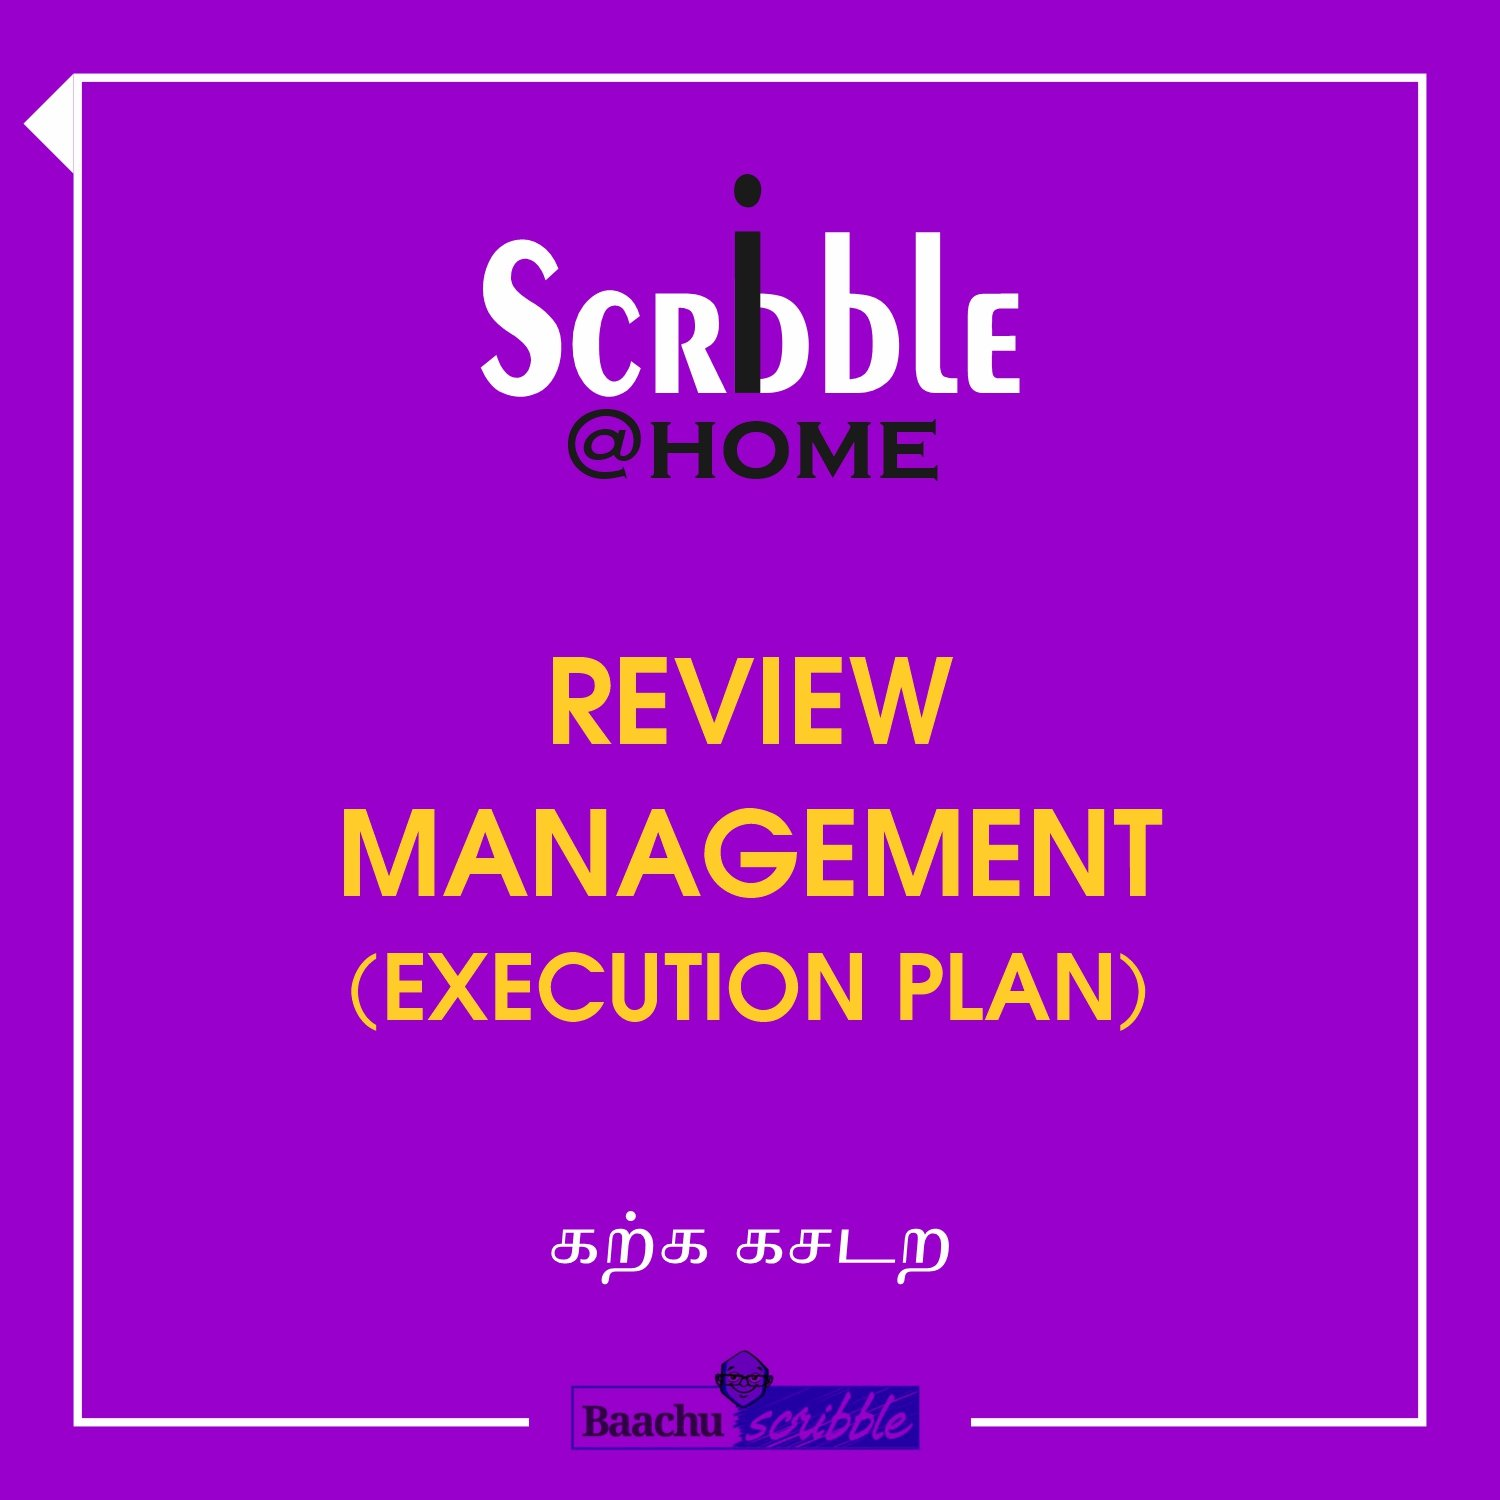 Review Management (Execution Plan)